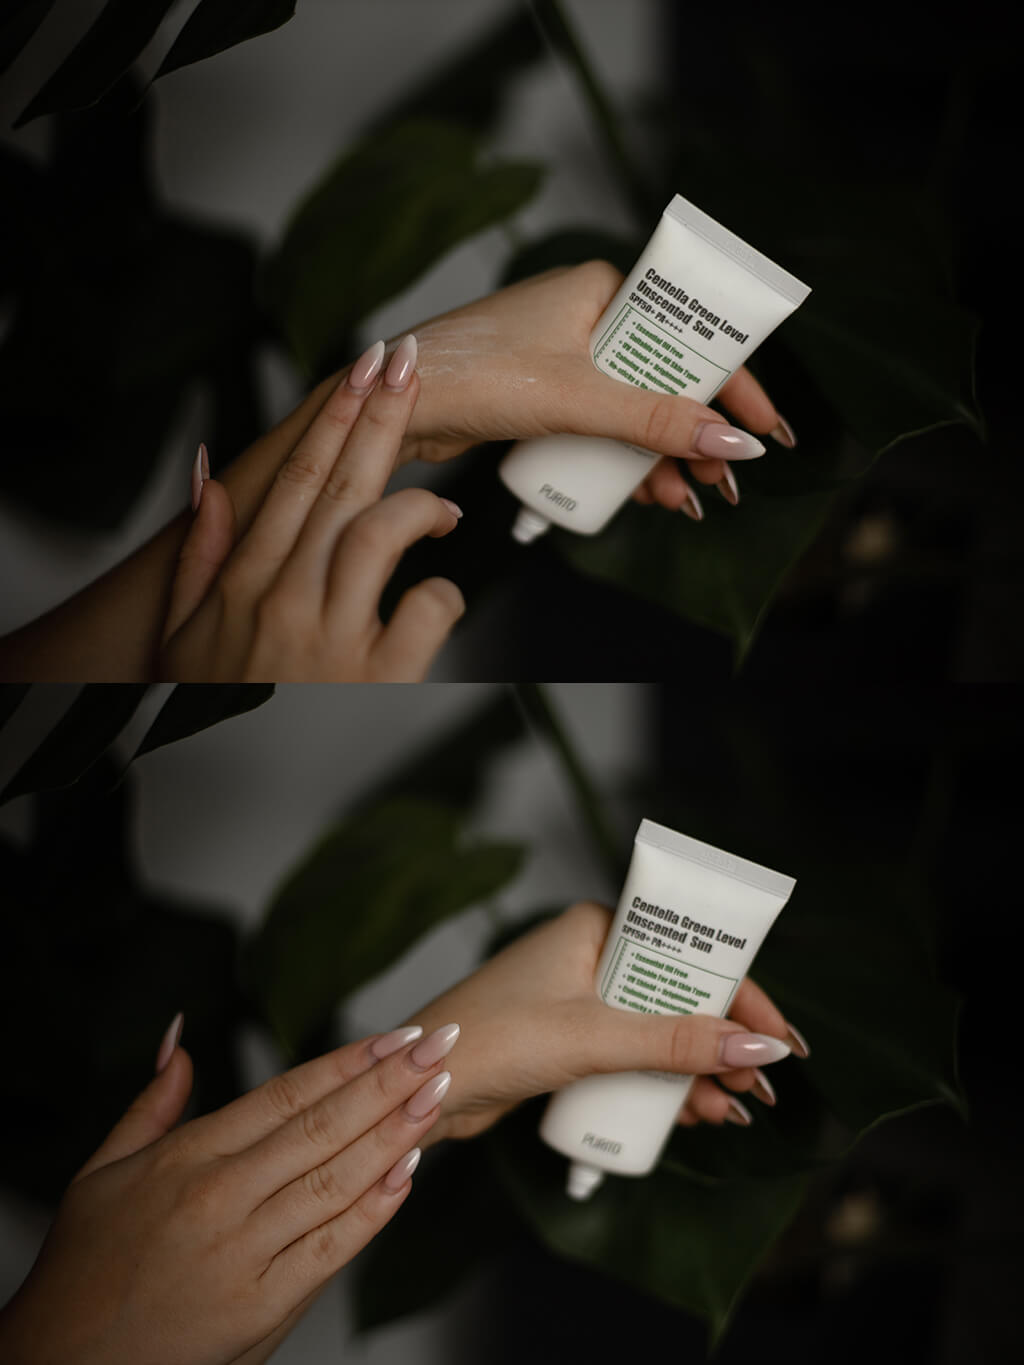 Purito Centella Green Level sunscreen application